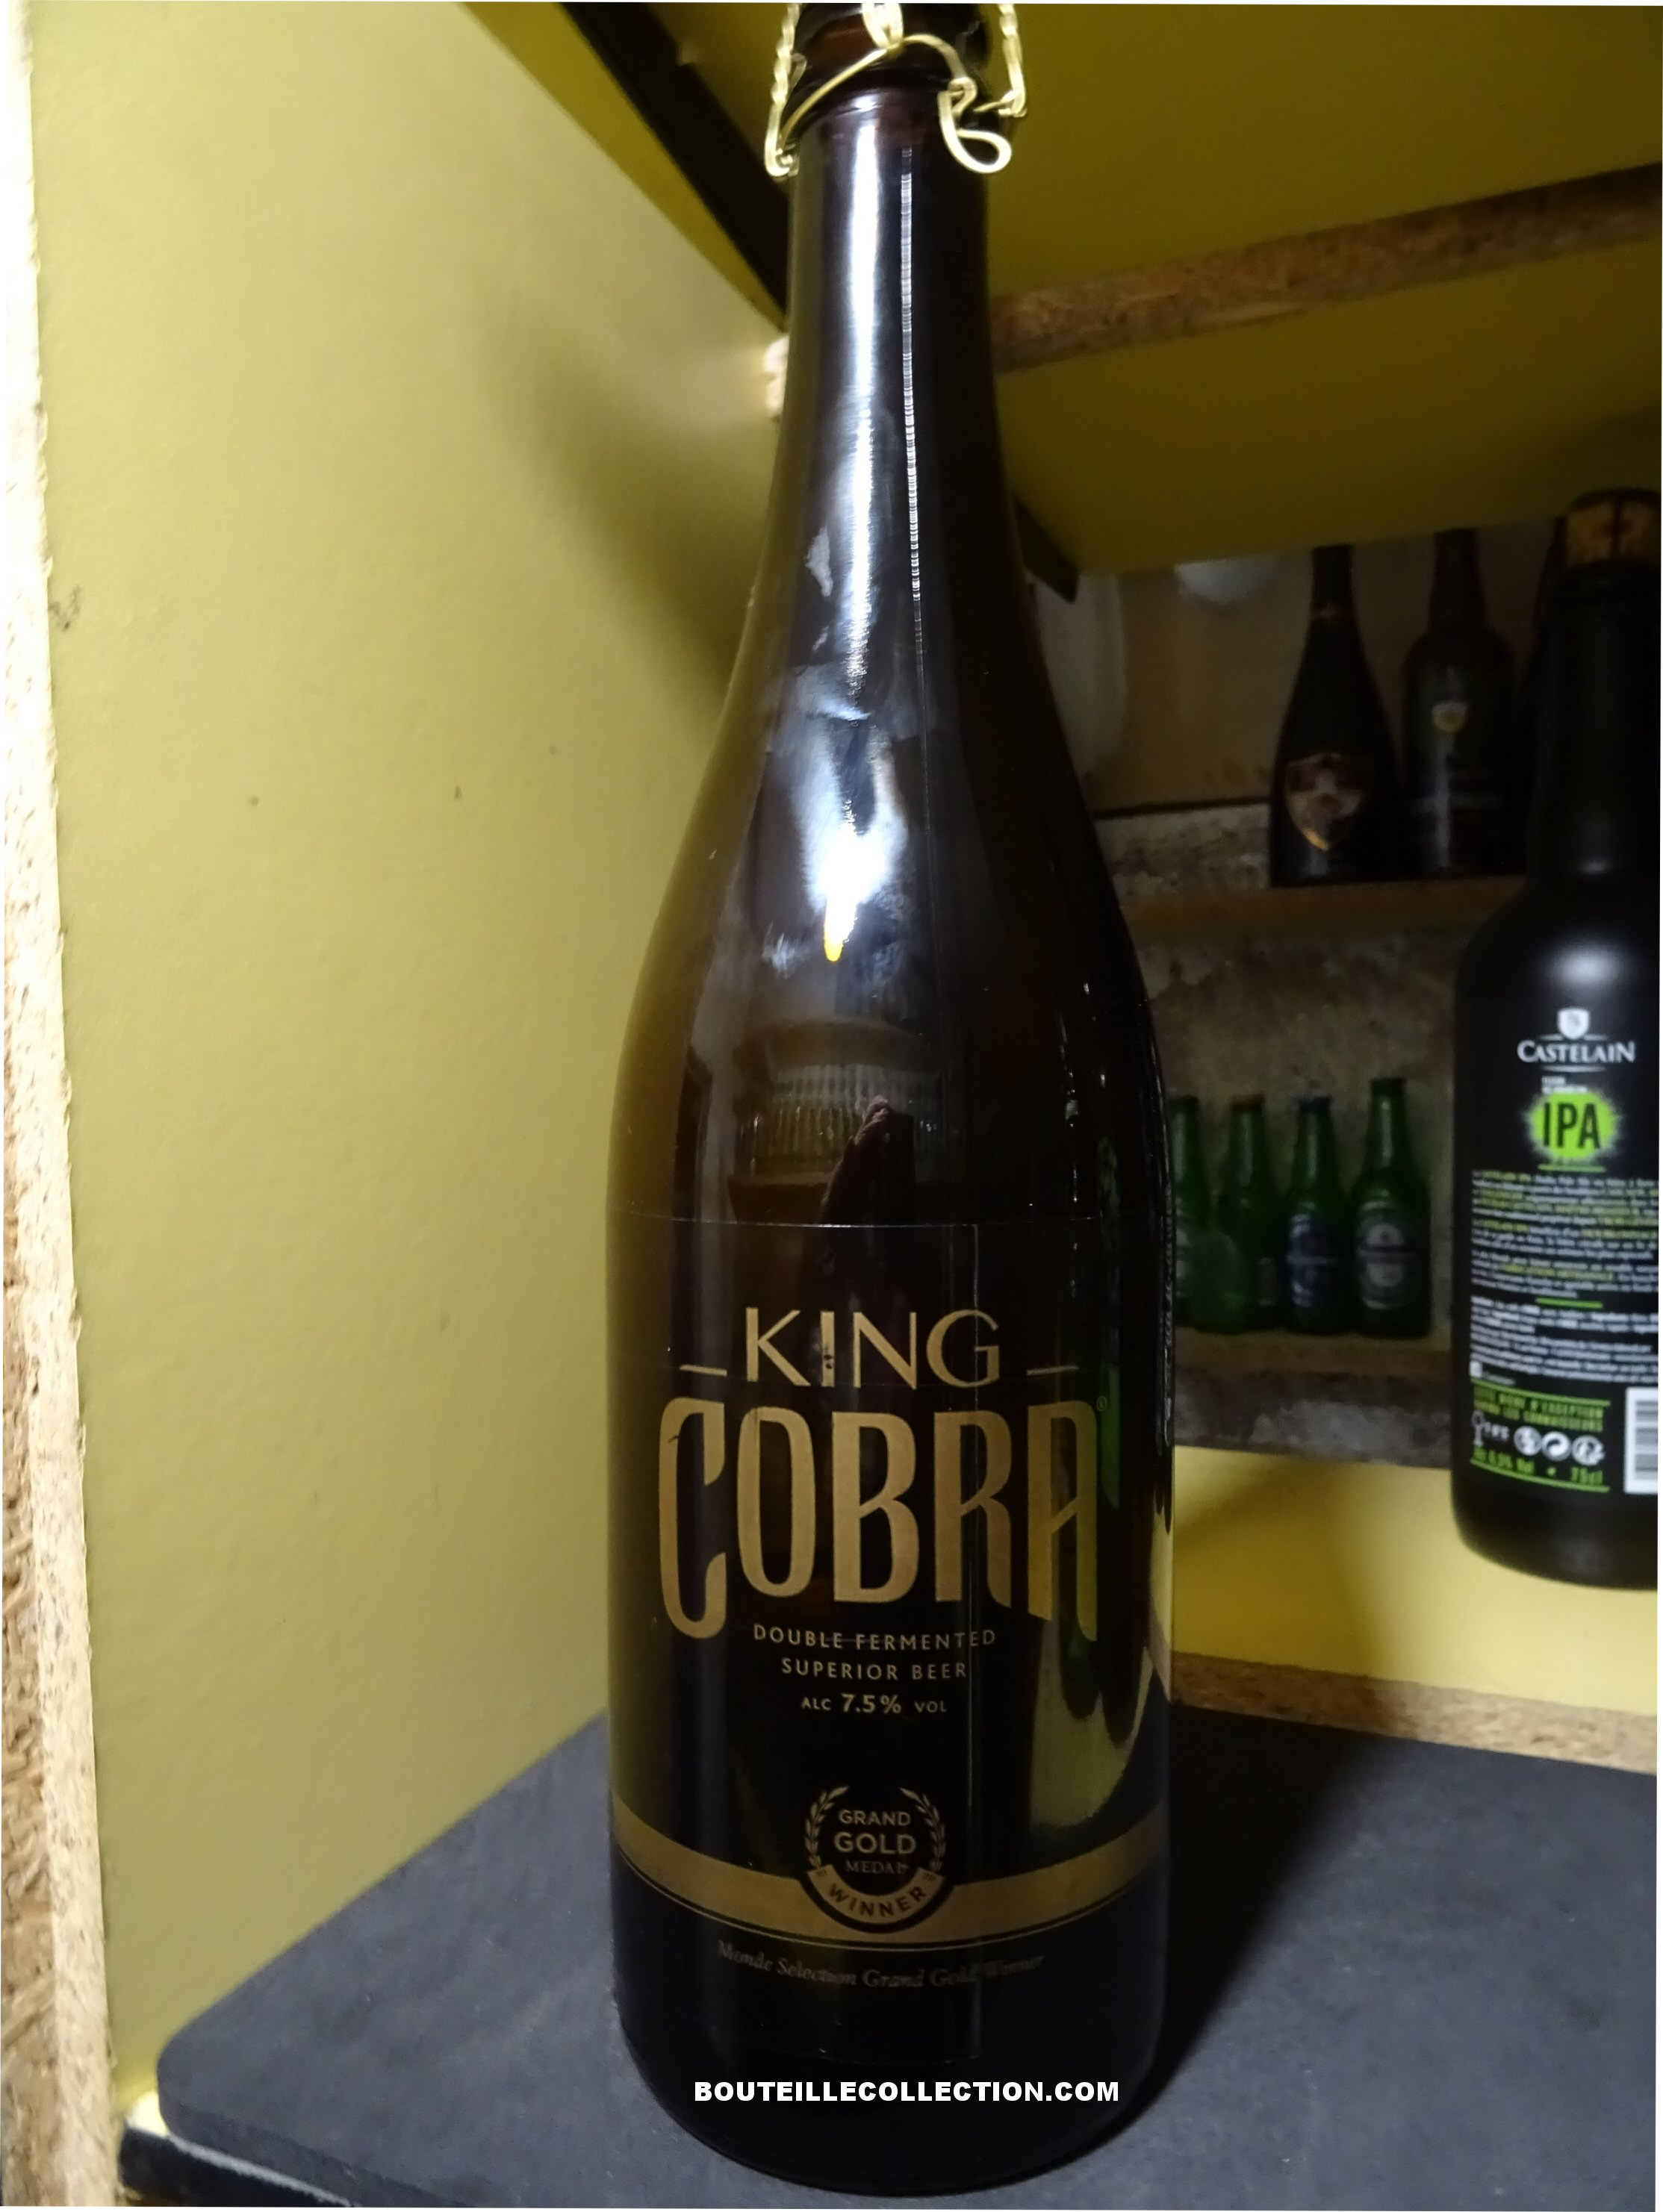 COBRA KING 75CL B .jpg